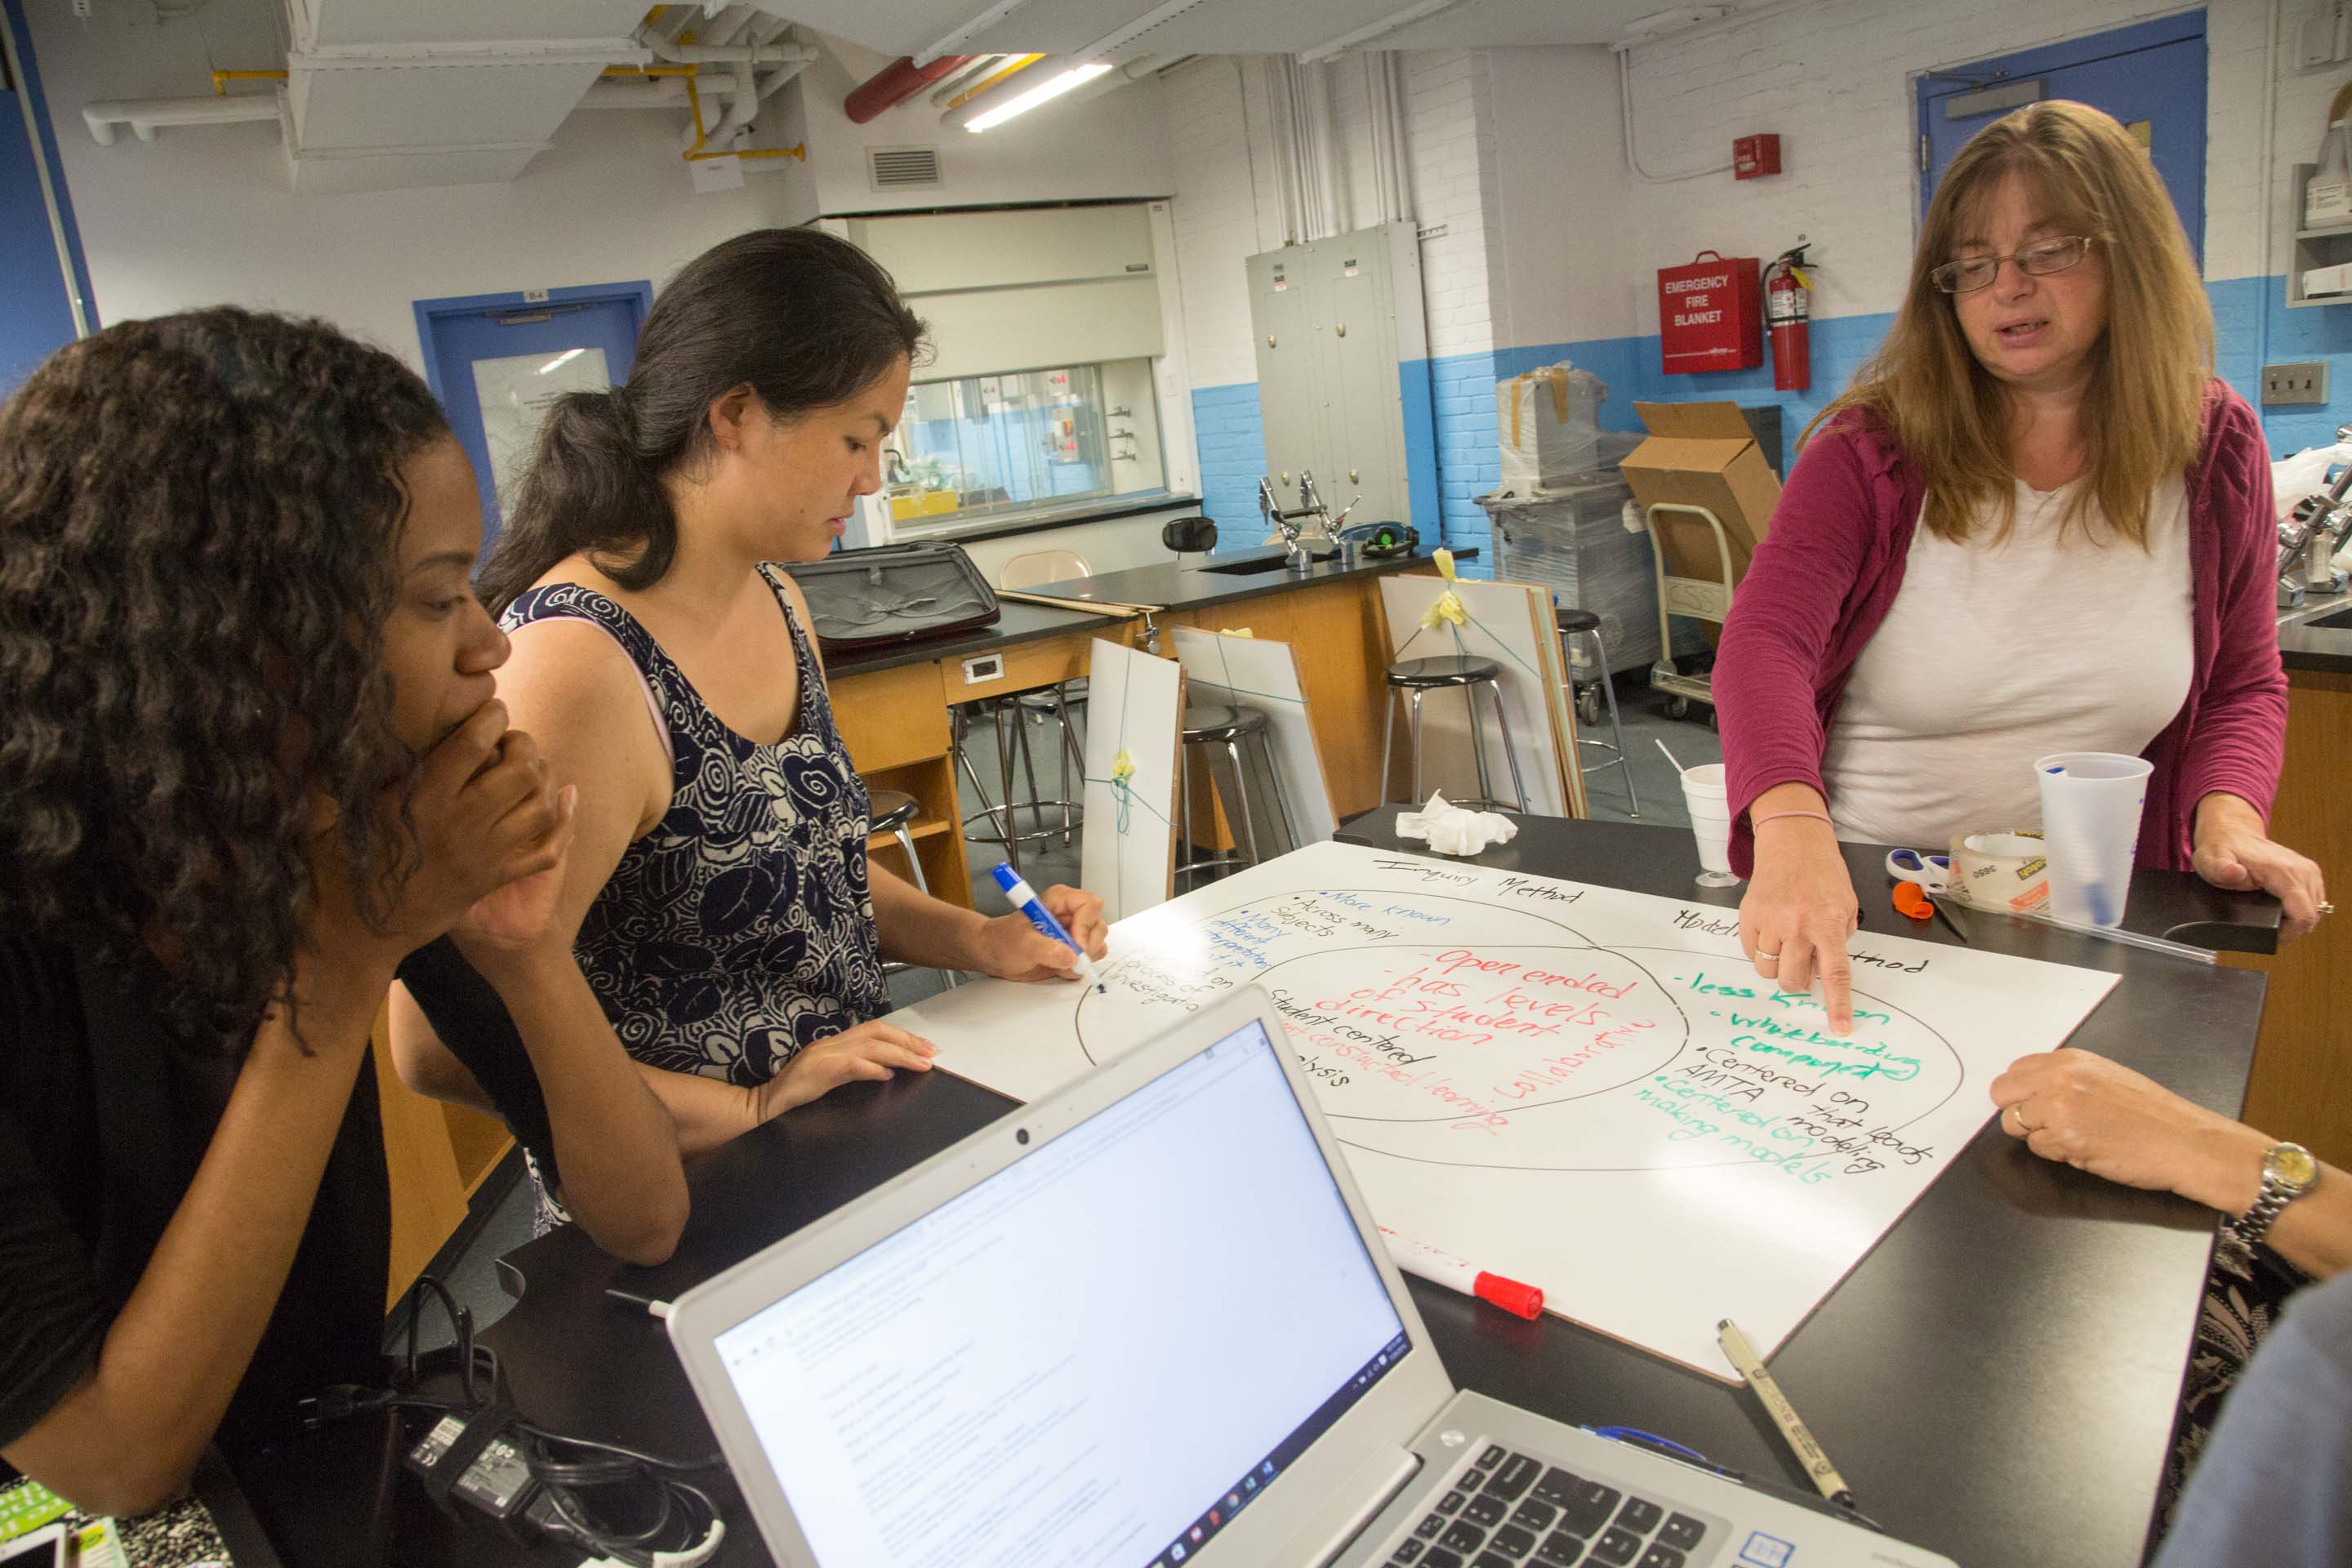 Teaching Rotational Motion: A Hands-on Workshop